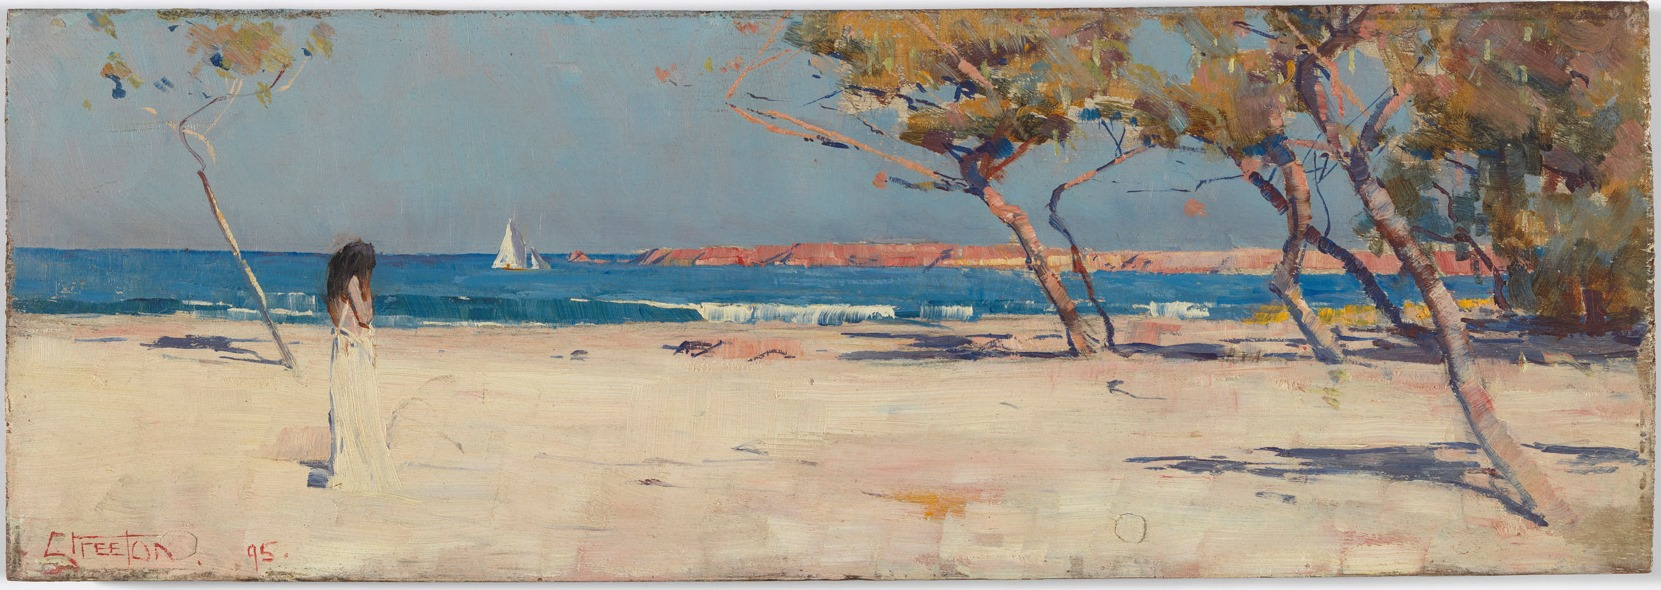 Arthur Streeton,  Ariadne , 1895 Oil on wood panel 12.7 x 35.4 cm National Gallery of Australia, Canberra, Members Acquisition Fund 2016 © National Gallery of Australia, Canberra